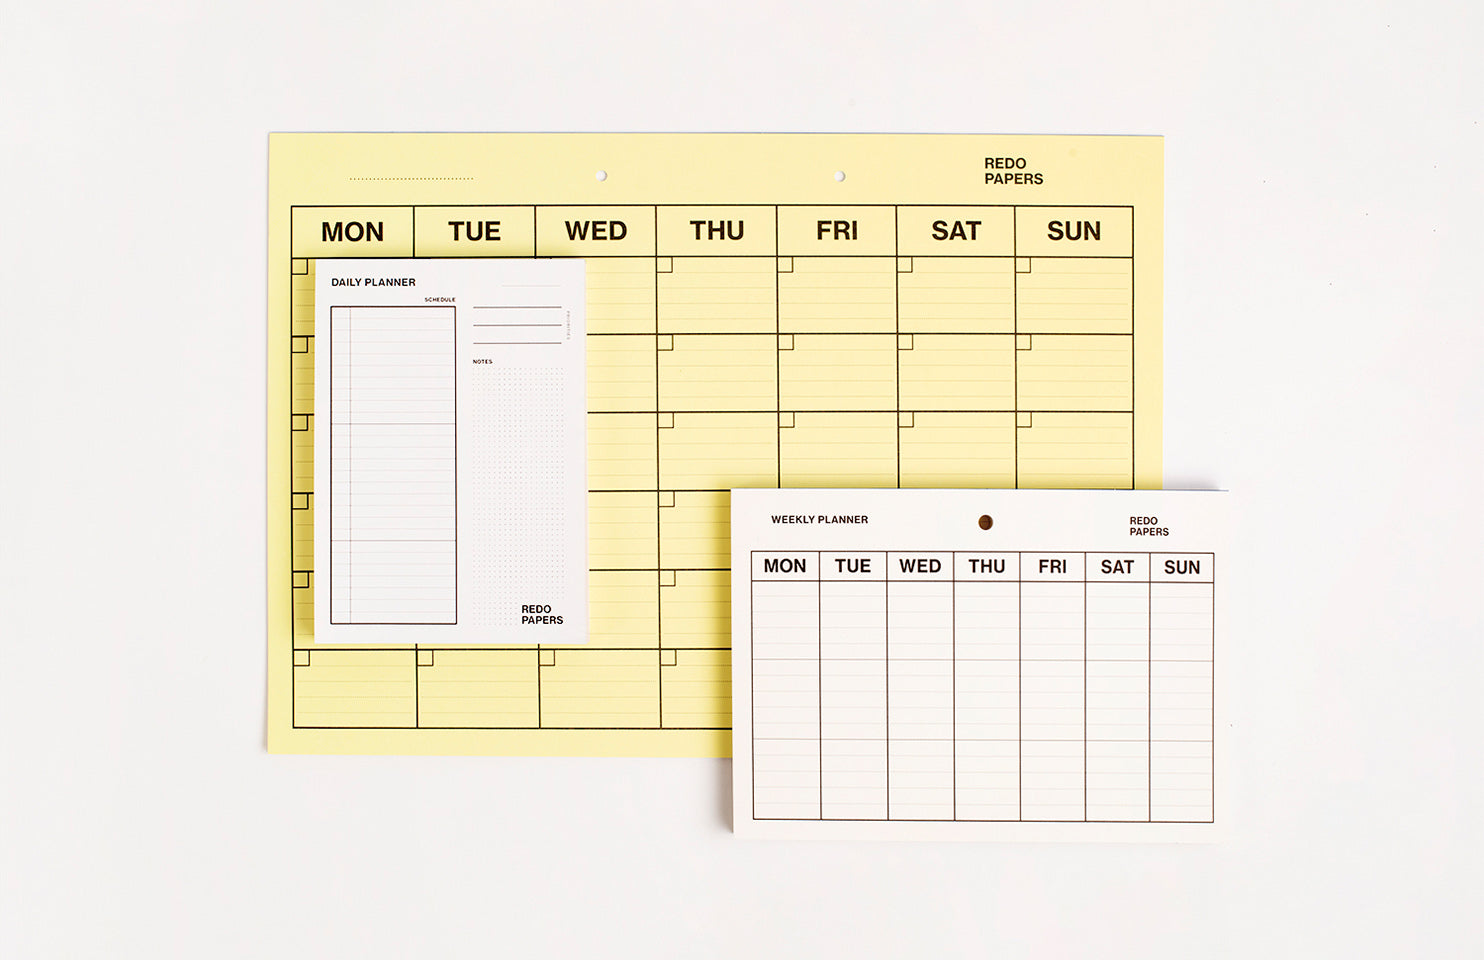 Why do we make a schedule?